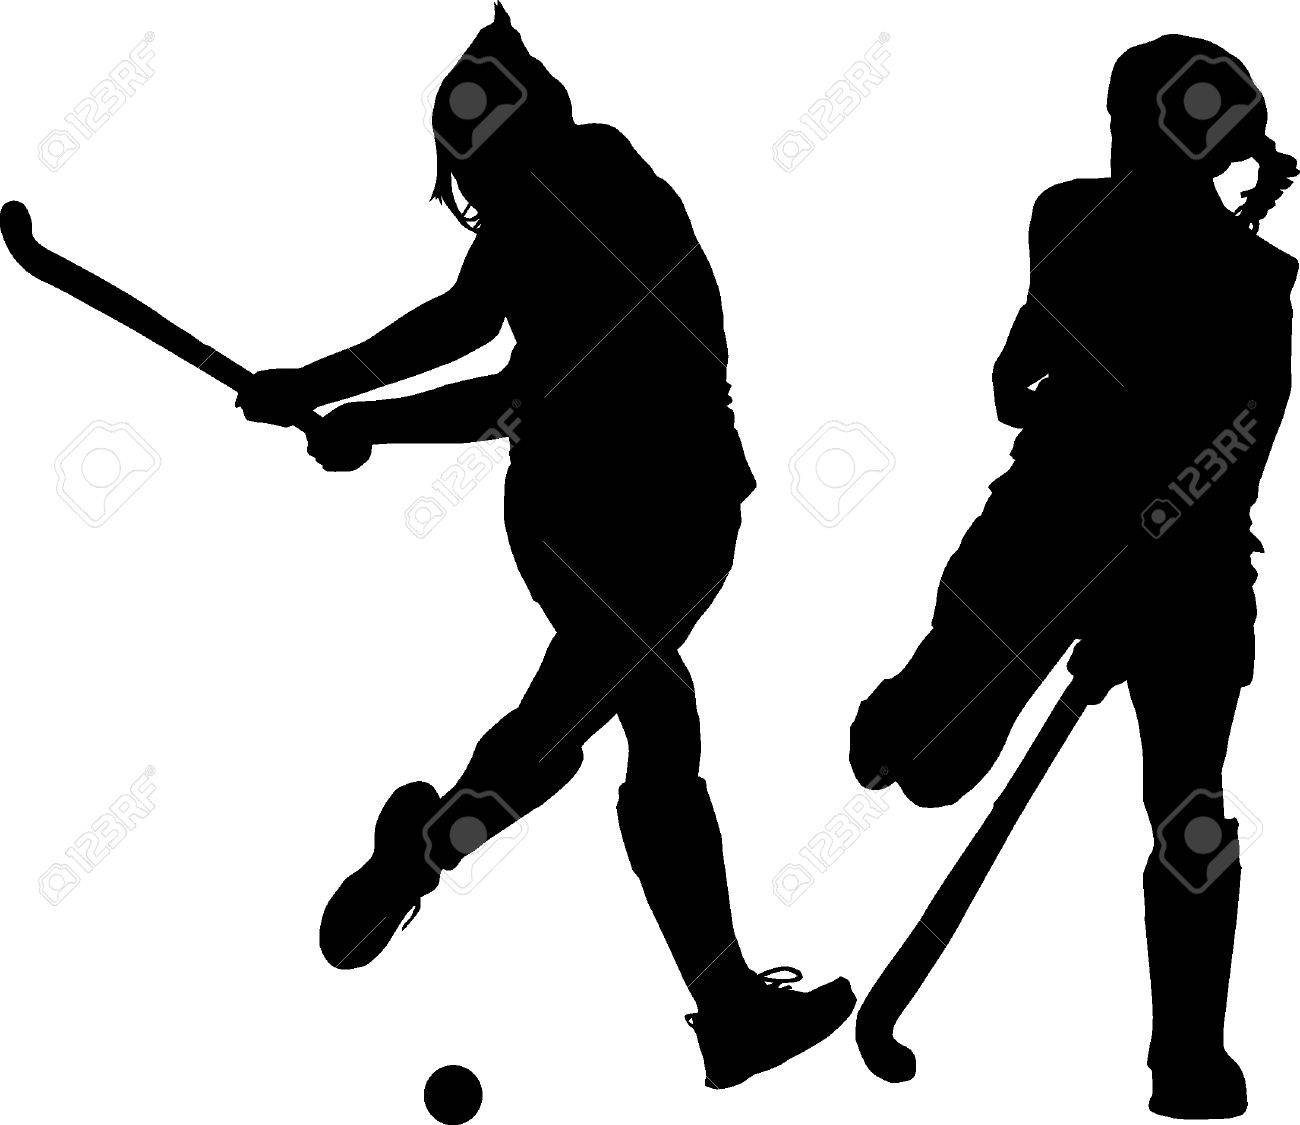 Black on white silhouette of girls ladies hockey players hitting and blocking ball stock vector